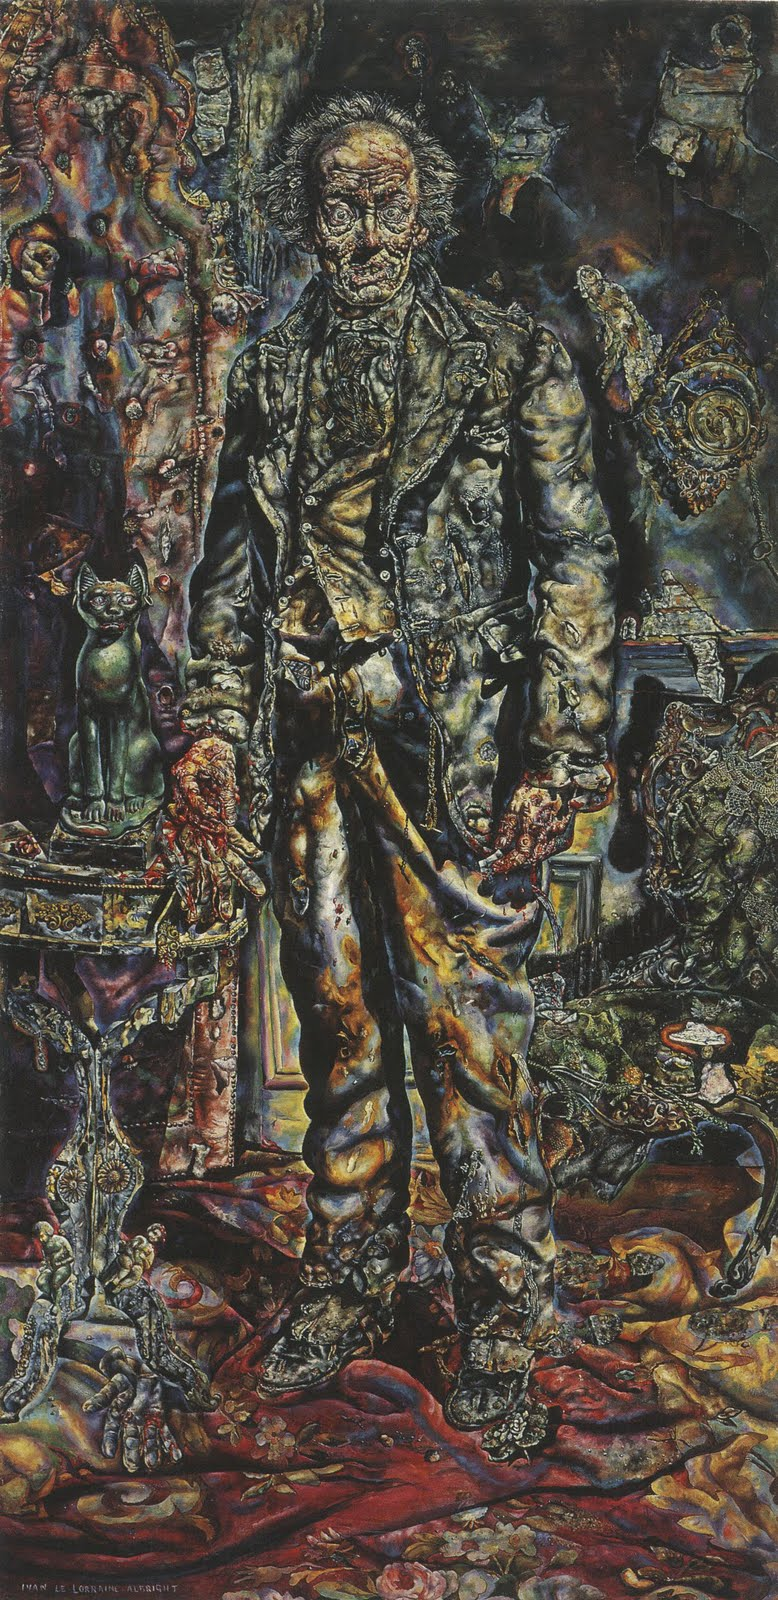 http://uploads6.wikipaintings.org/images/ivan-albright/the-picture-of-dorian-gray-1944.jpg